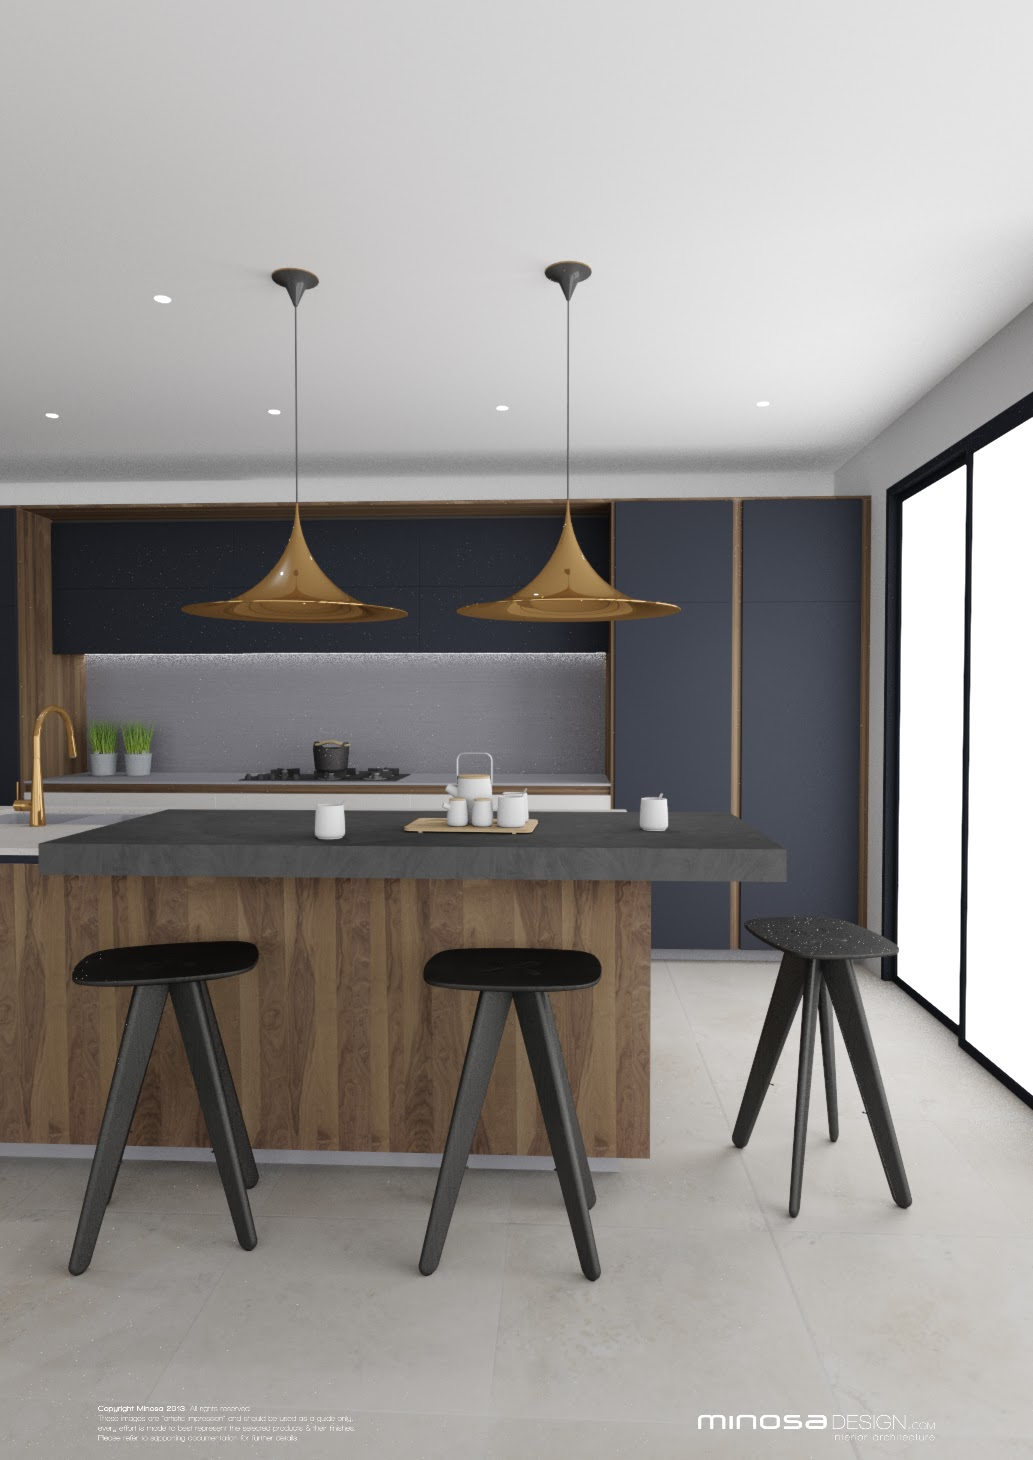 ... Fav Kitchen Design Concept At The Moment, It Is Masculine, Rich And  Very Elegant. The Use Of Walnut Timber, White Solid Surface, Stainless  Steel, ...